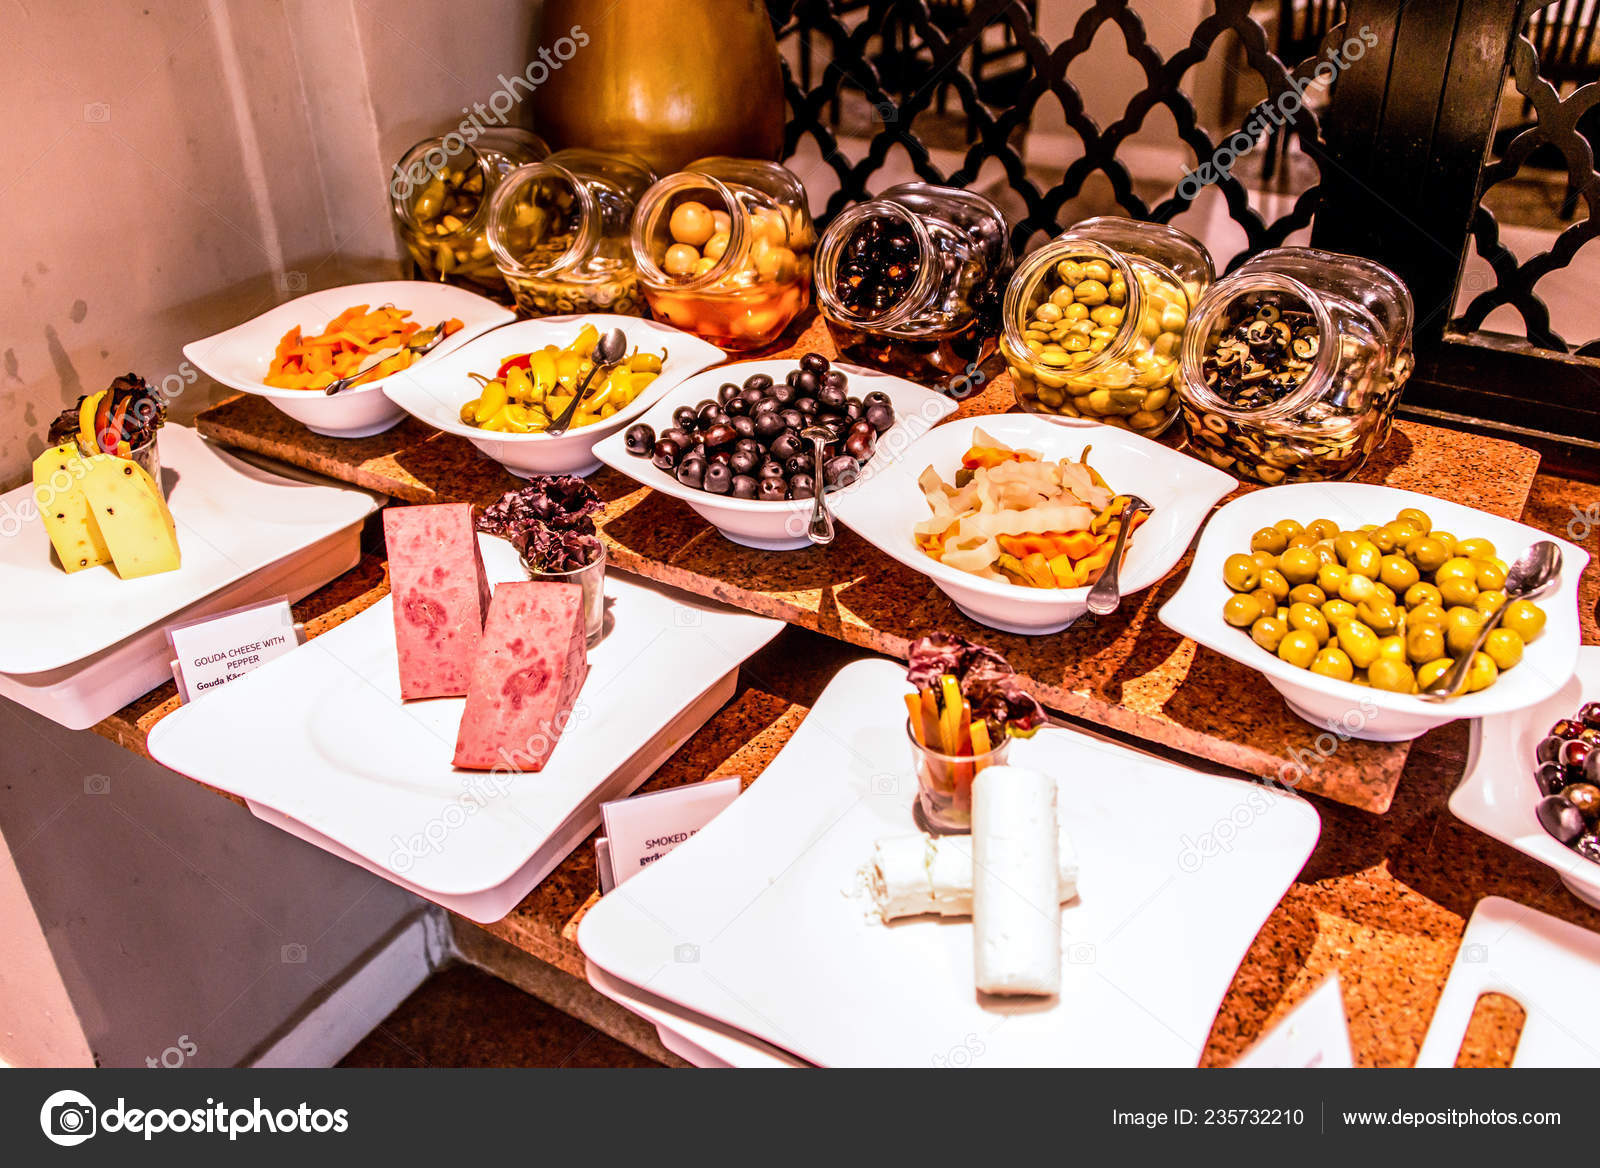 Variety Food Buffet Table Wine Snack Set Olives Cheese And Other Appetizer Italian Antipasti On Plate In Egypt Stock Photo Image By C Donogl 235732210